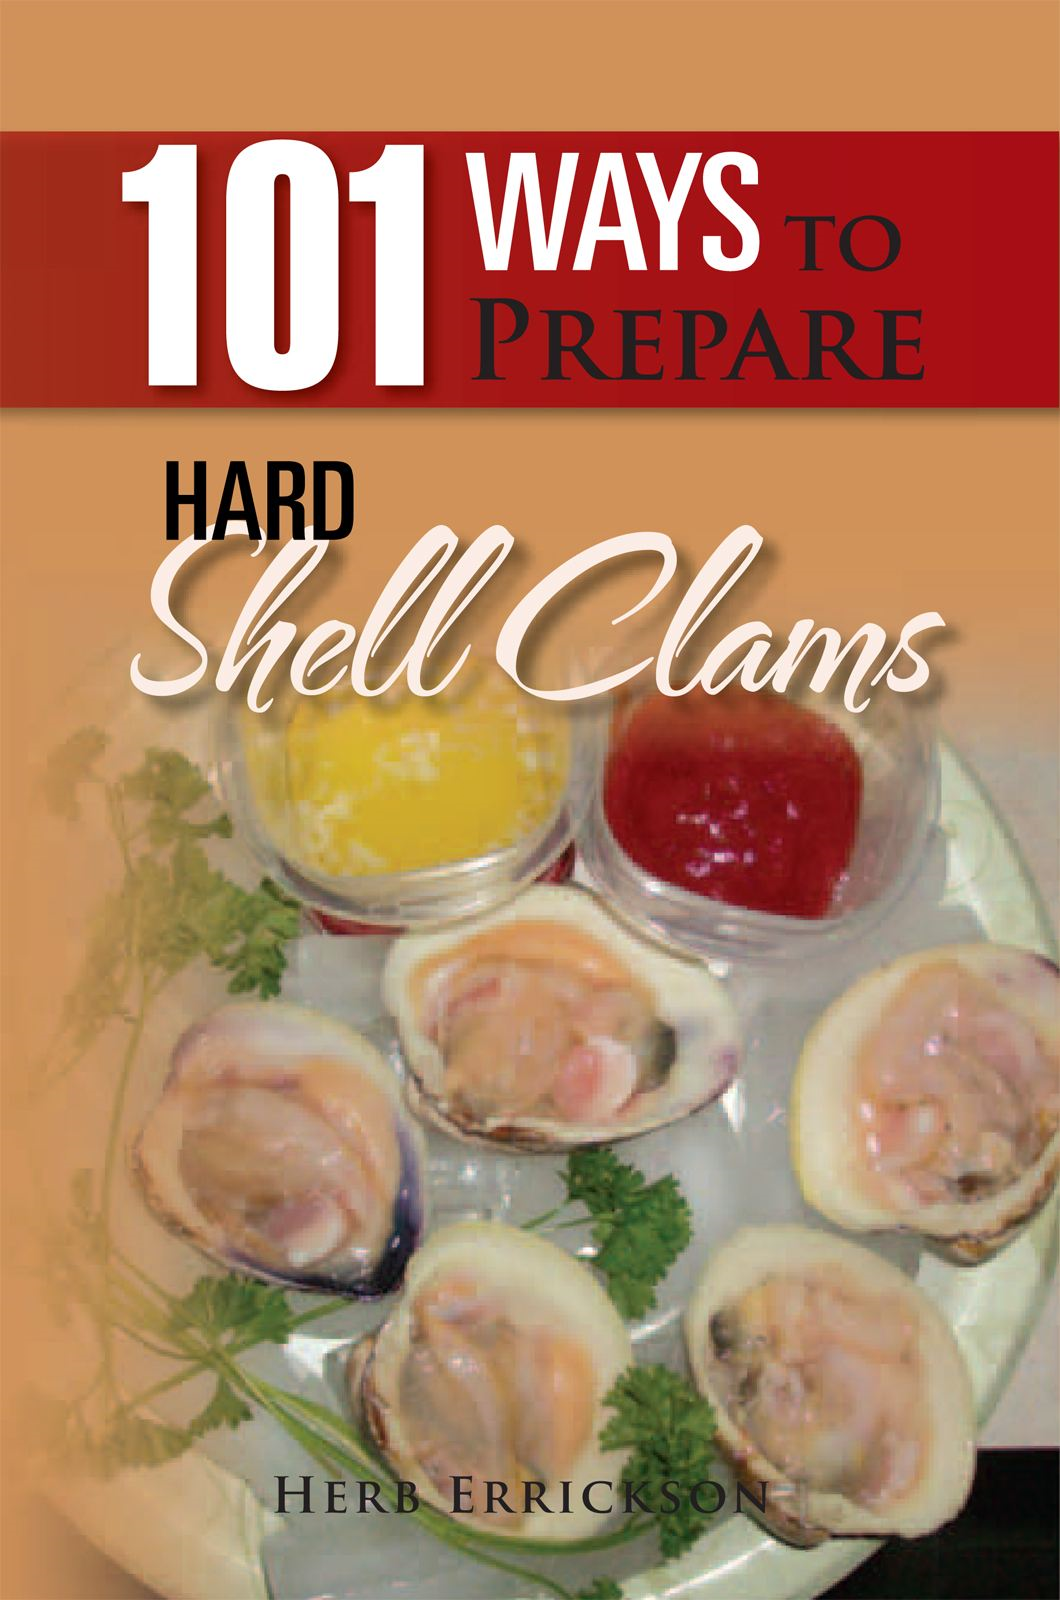 101 Ways to Prepare Hard Shell Clams